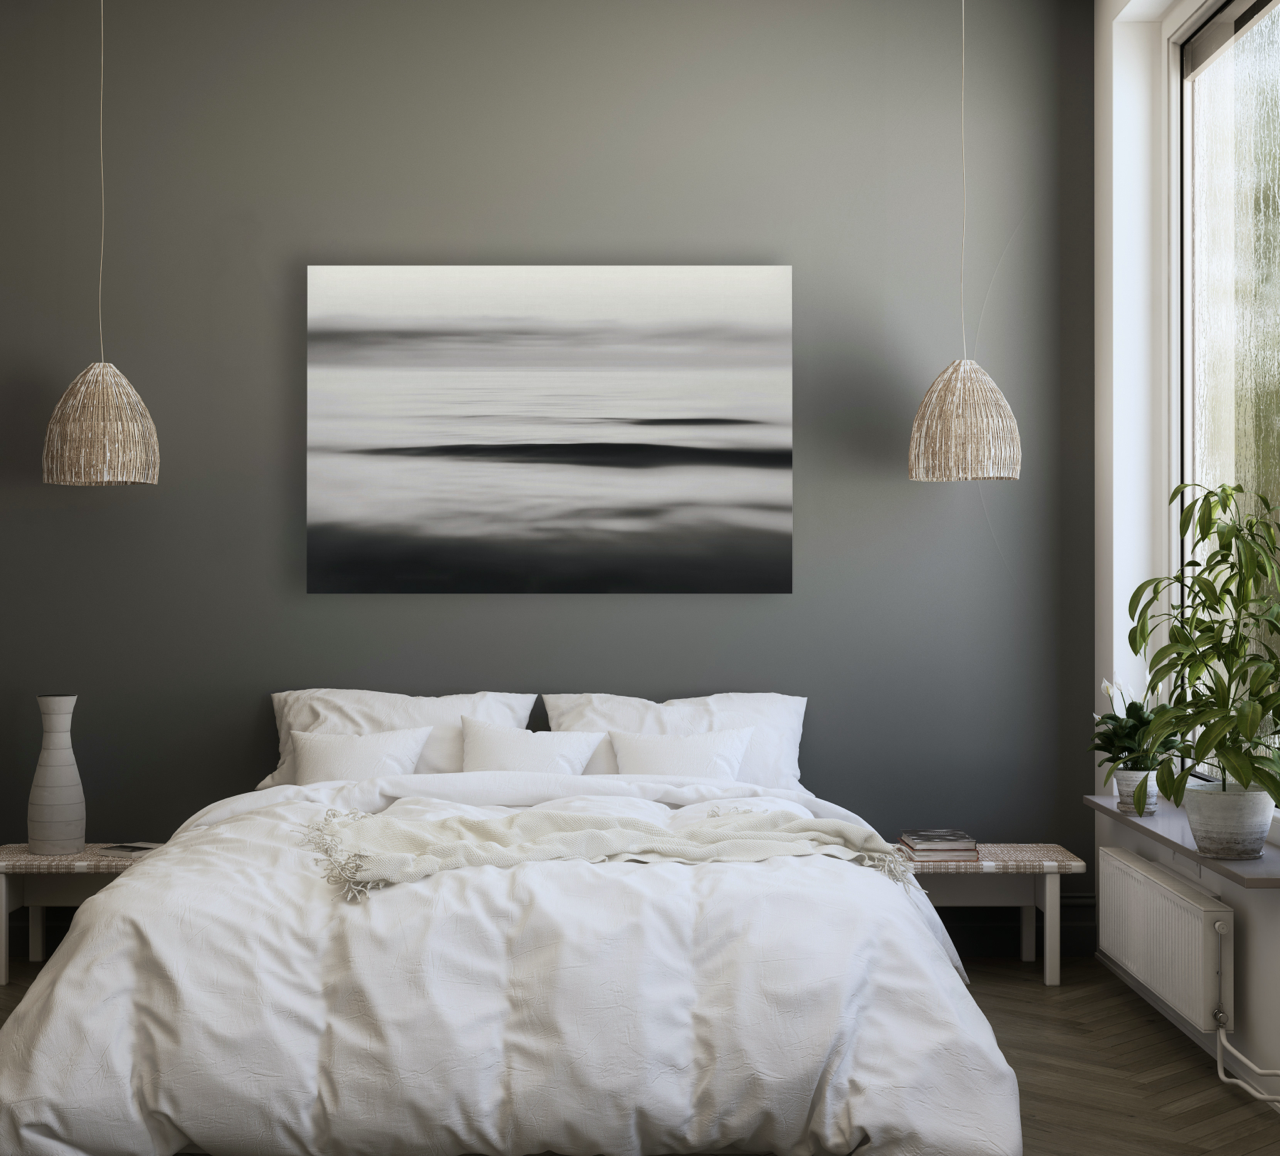 Abstract black and white art in bedroom